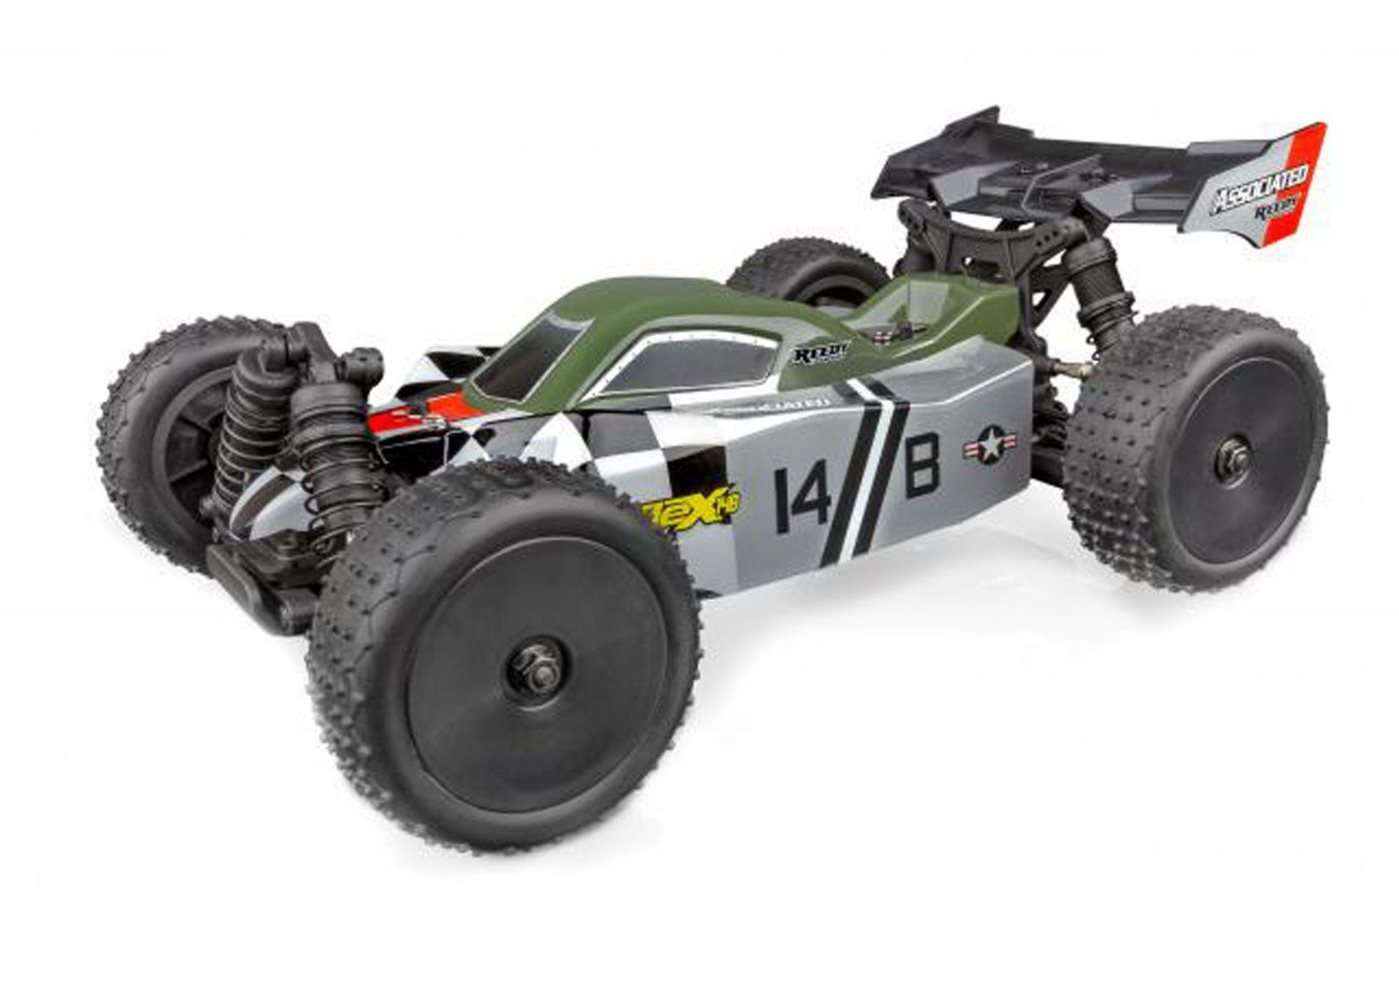 Associated Reflex 14B RTR Buggy 4WD Combo